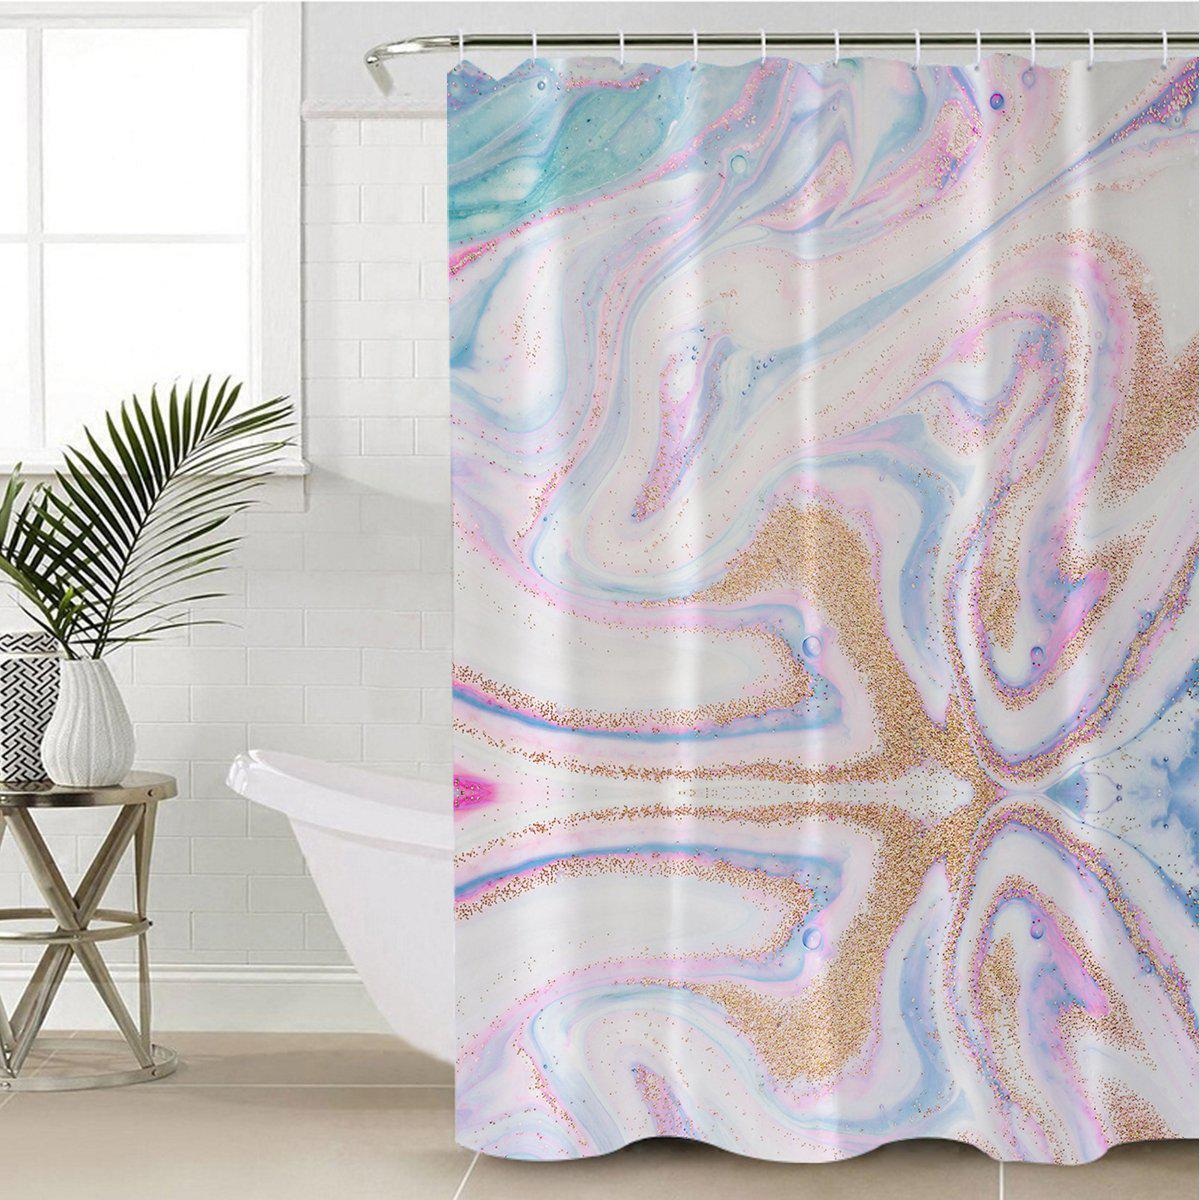 Renaissance Island Shower Curtain